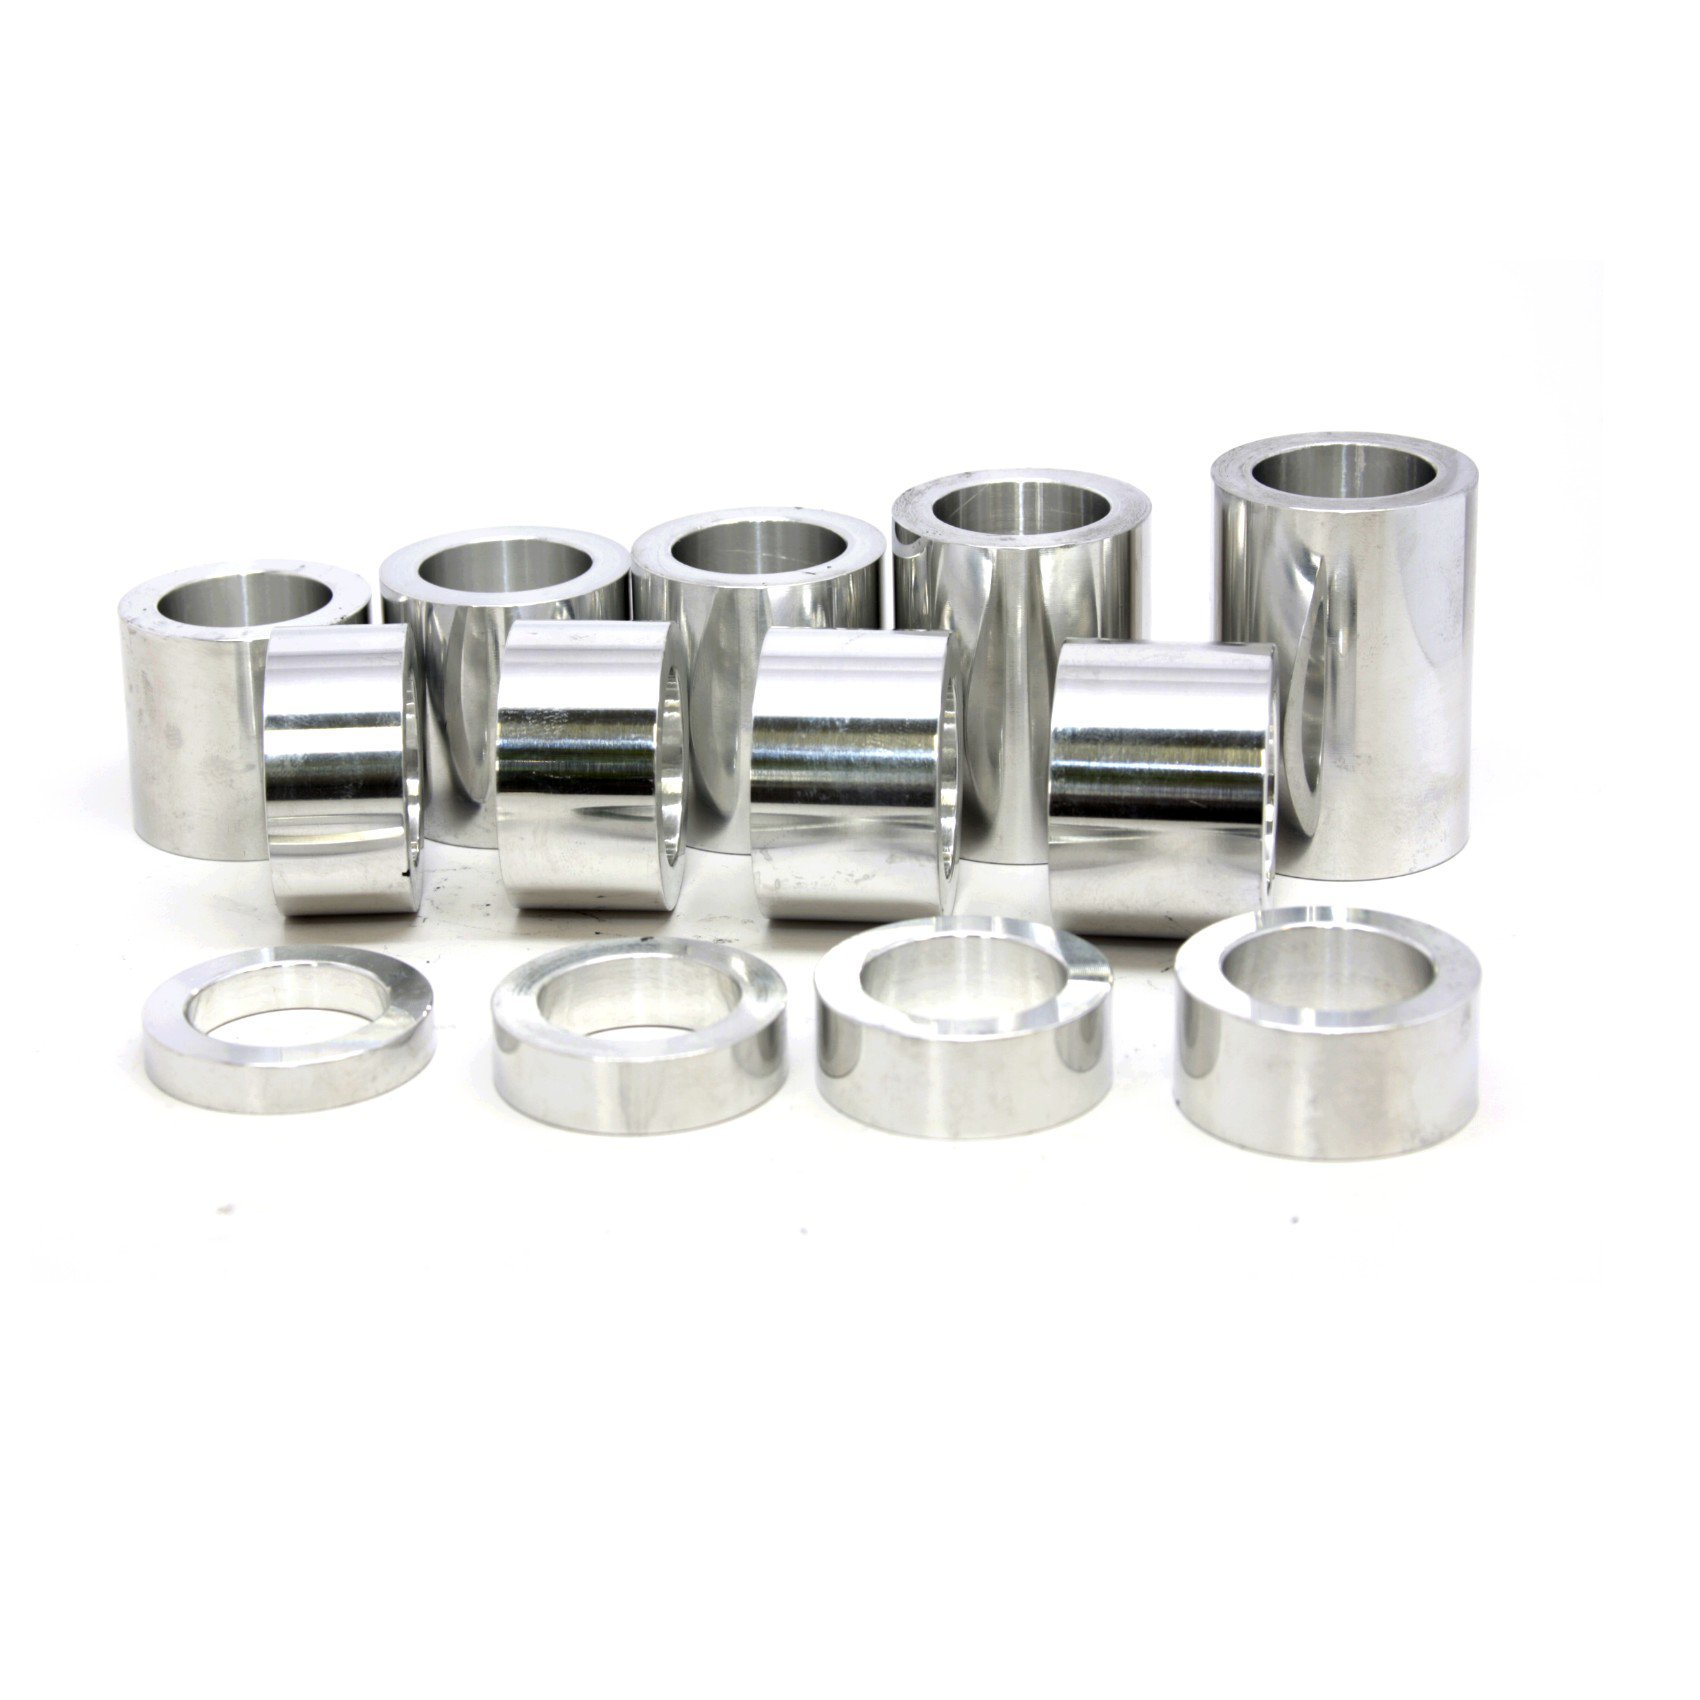 Wheel Axle Spacer Kit I.D. 3/4'' (0.75) - O.D. 1-1/8'' (1.125) - 13 Spacers Polished